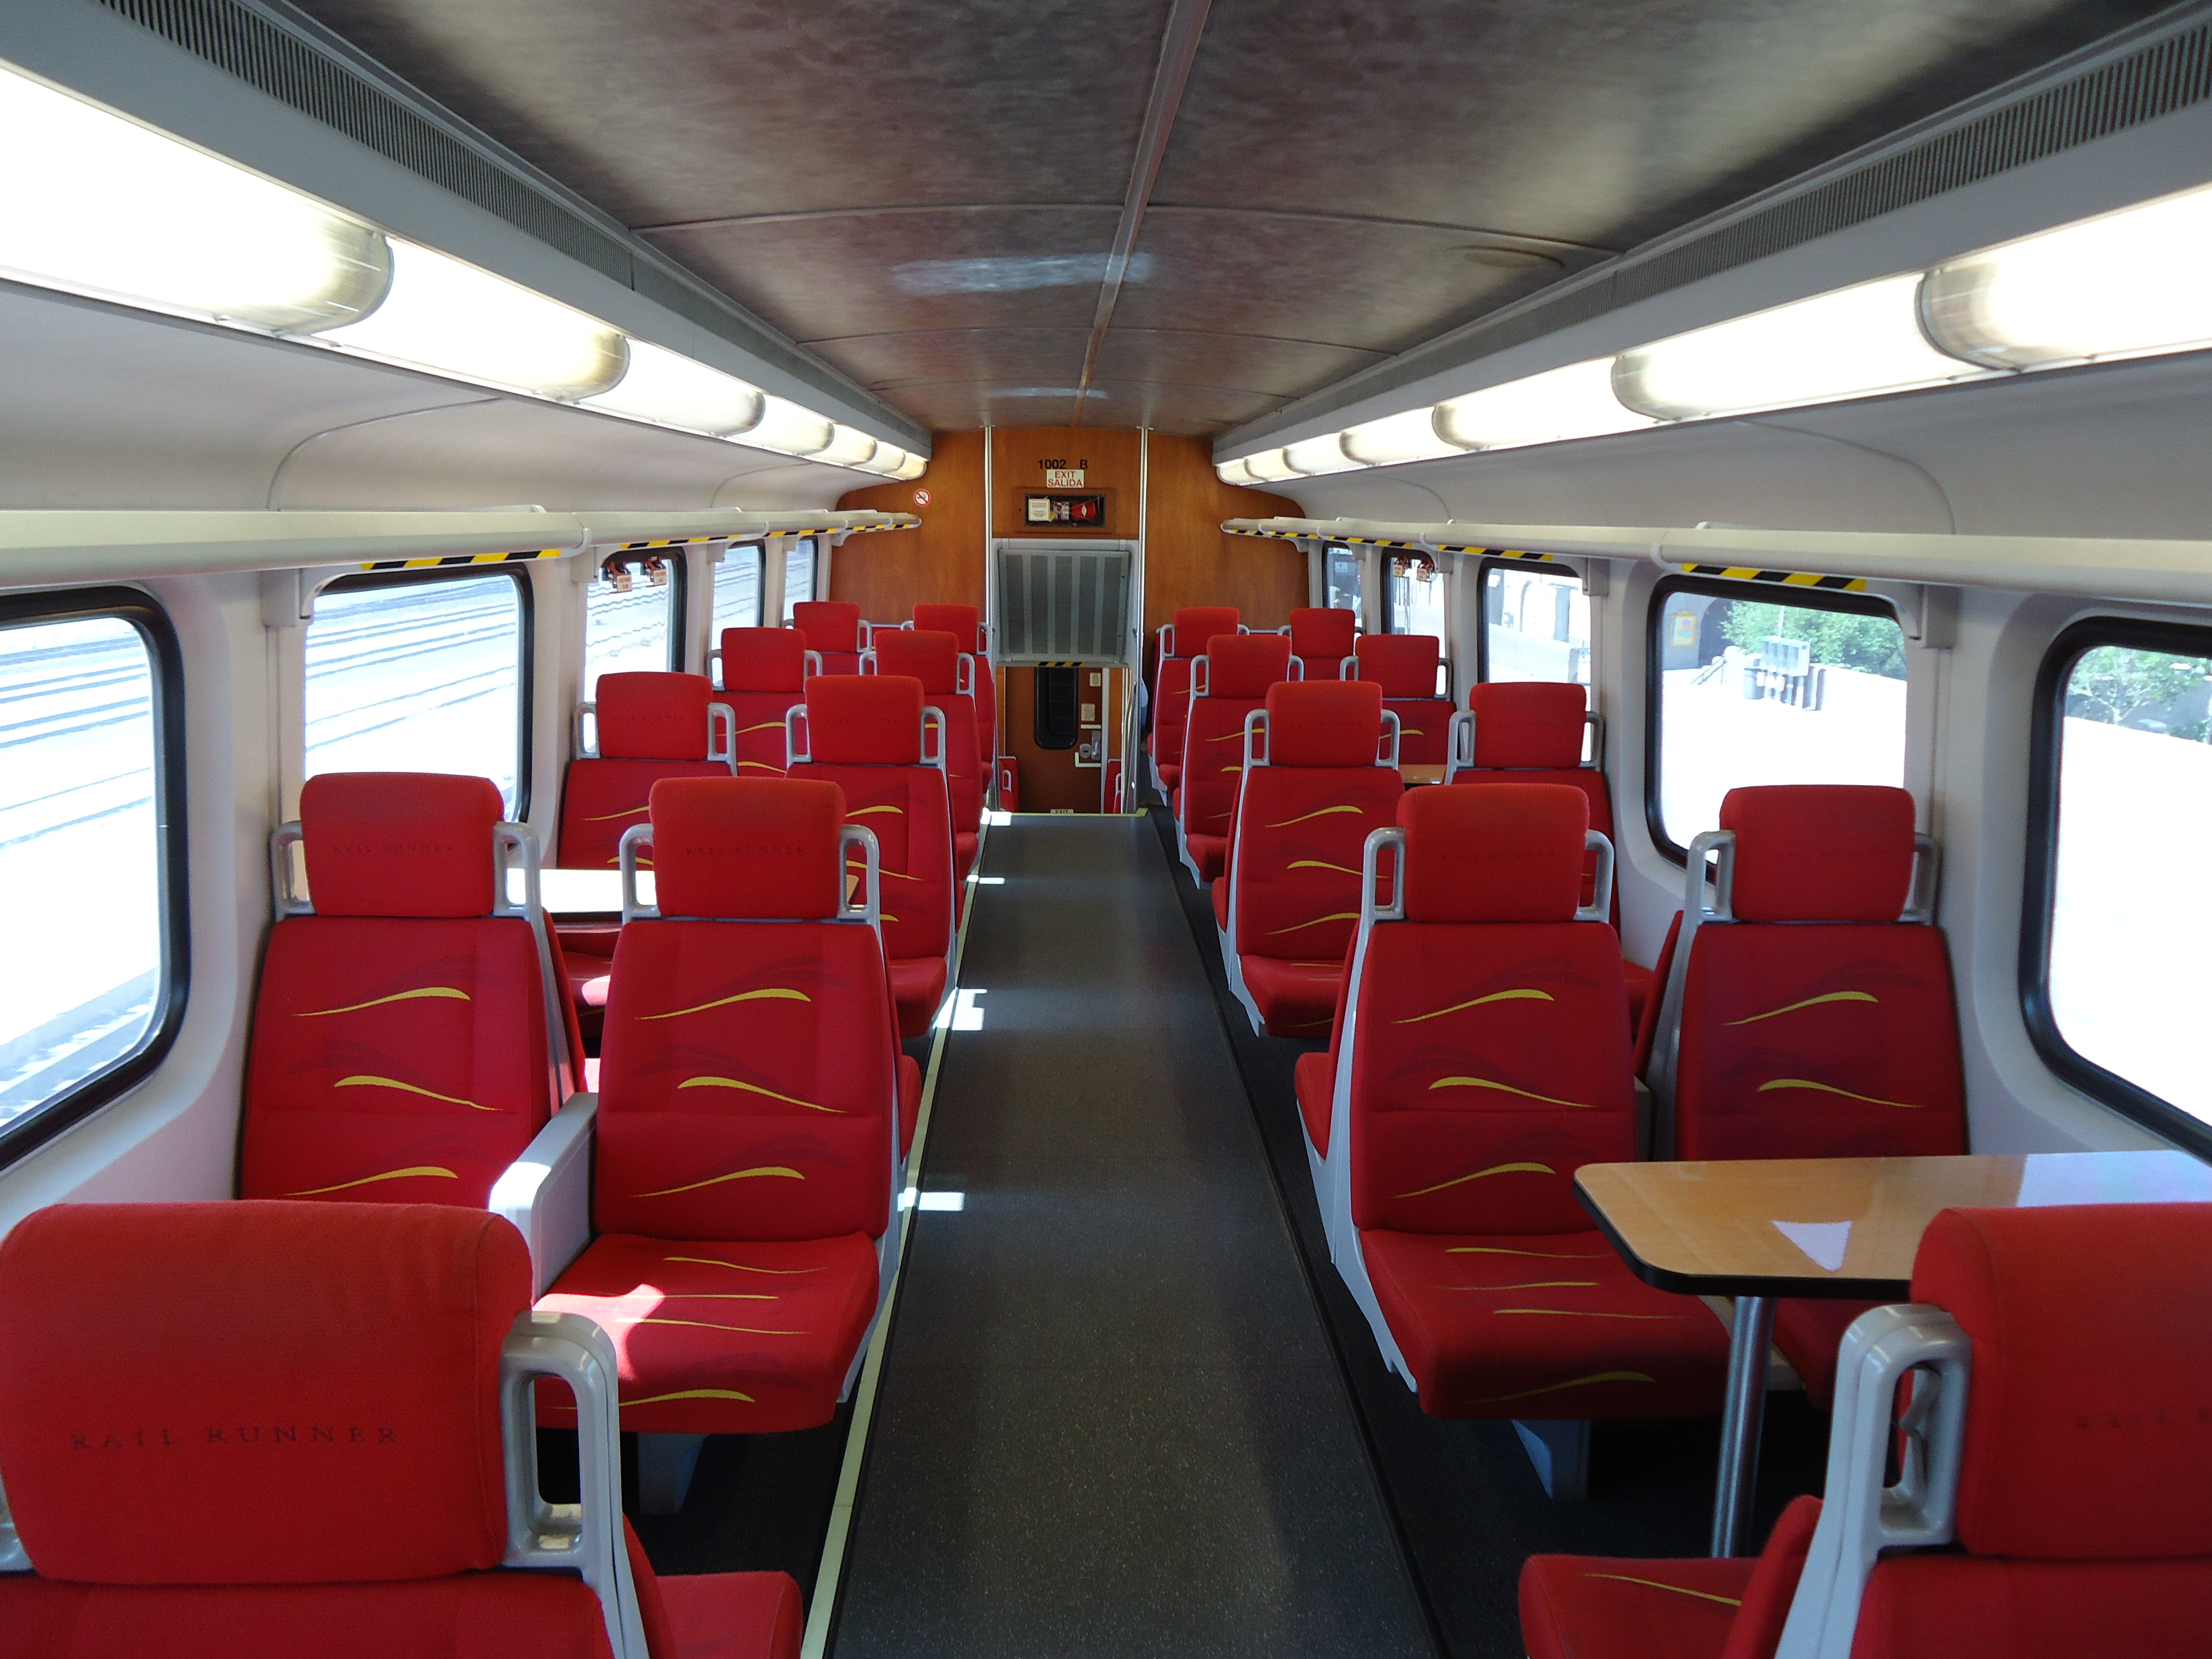 Metra Buying Old Trains Squandering Opportunity To Change